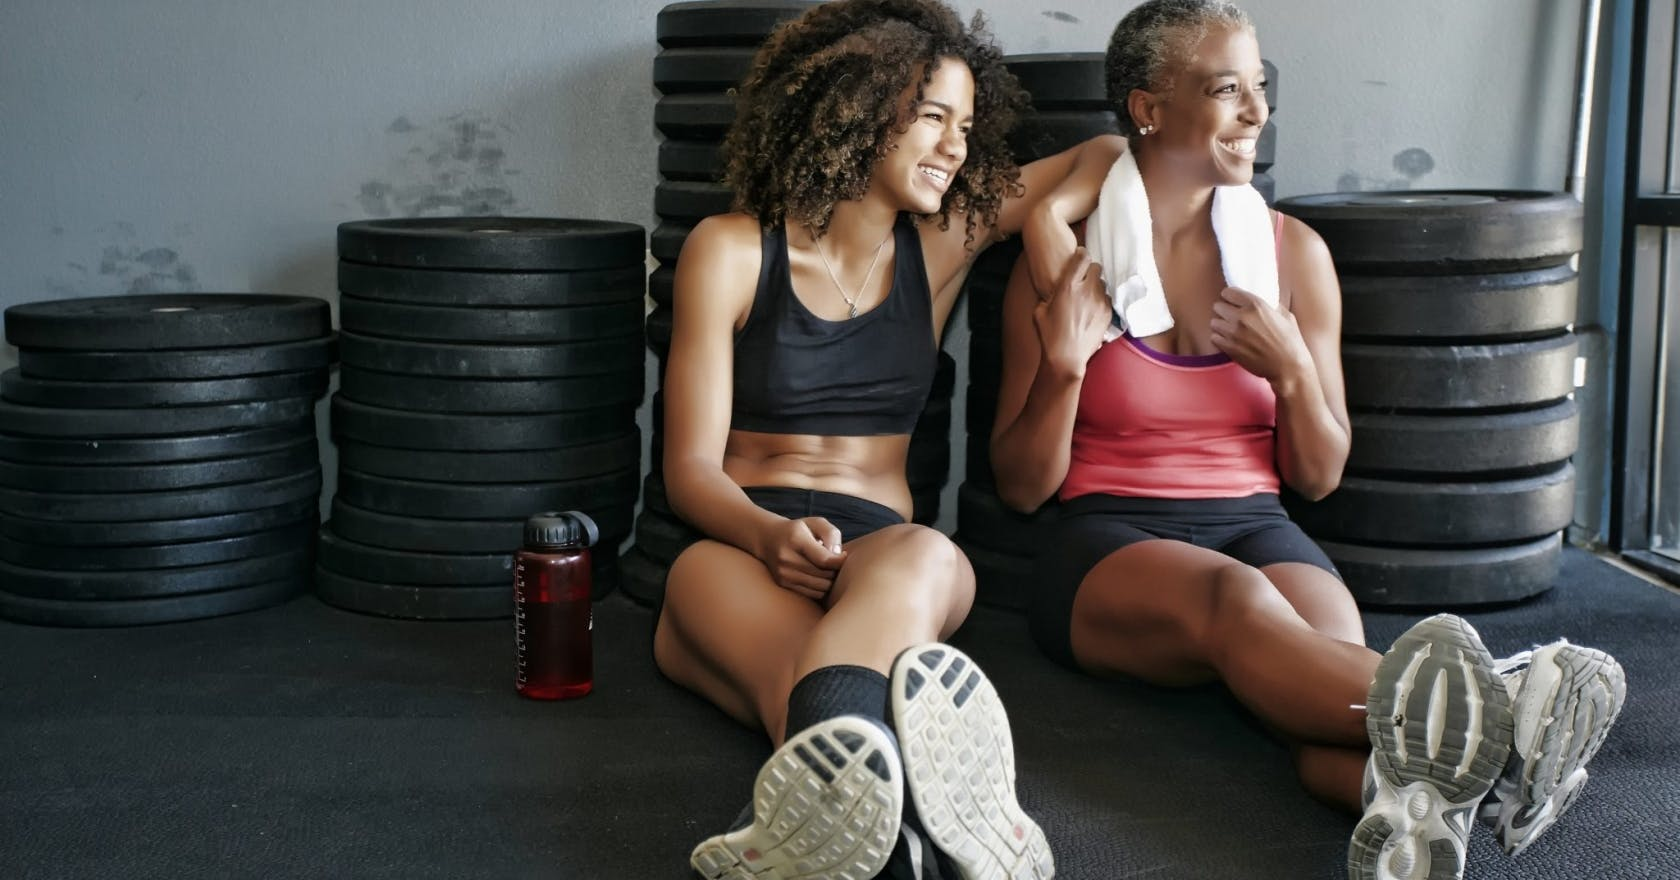 Close to giving up on your fitness goals? Here are the benefits of sticking with them